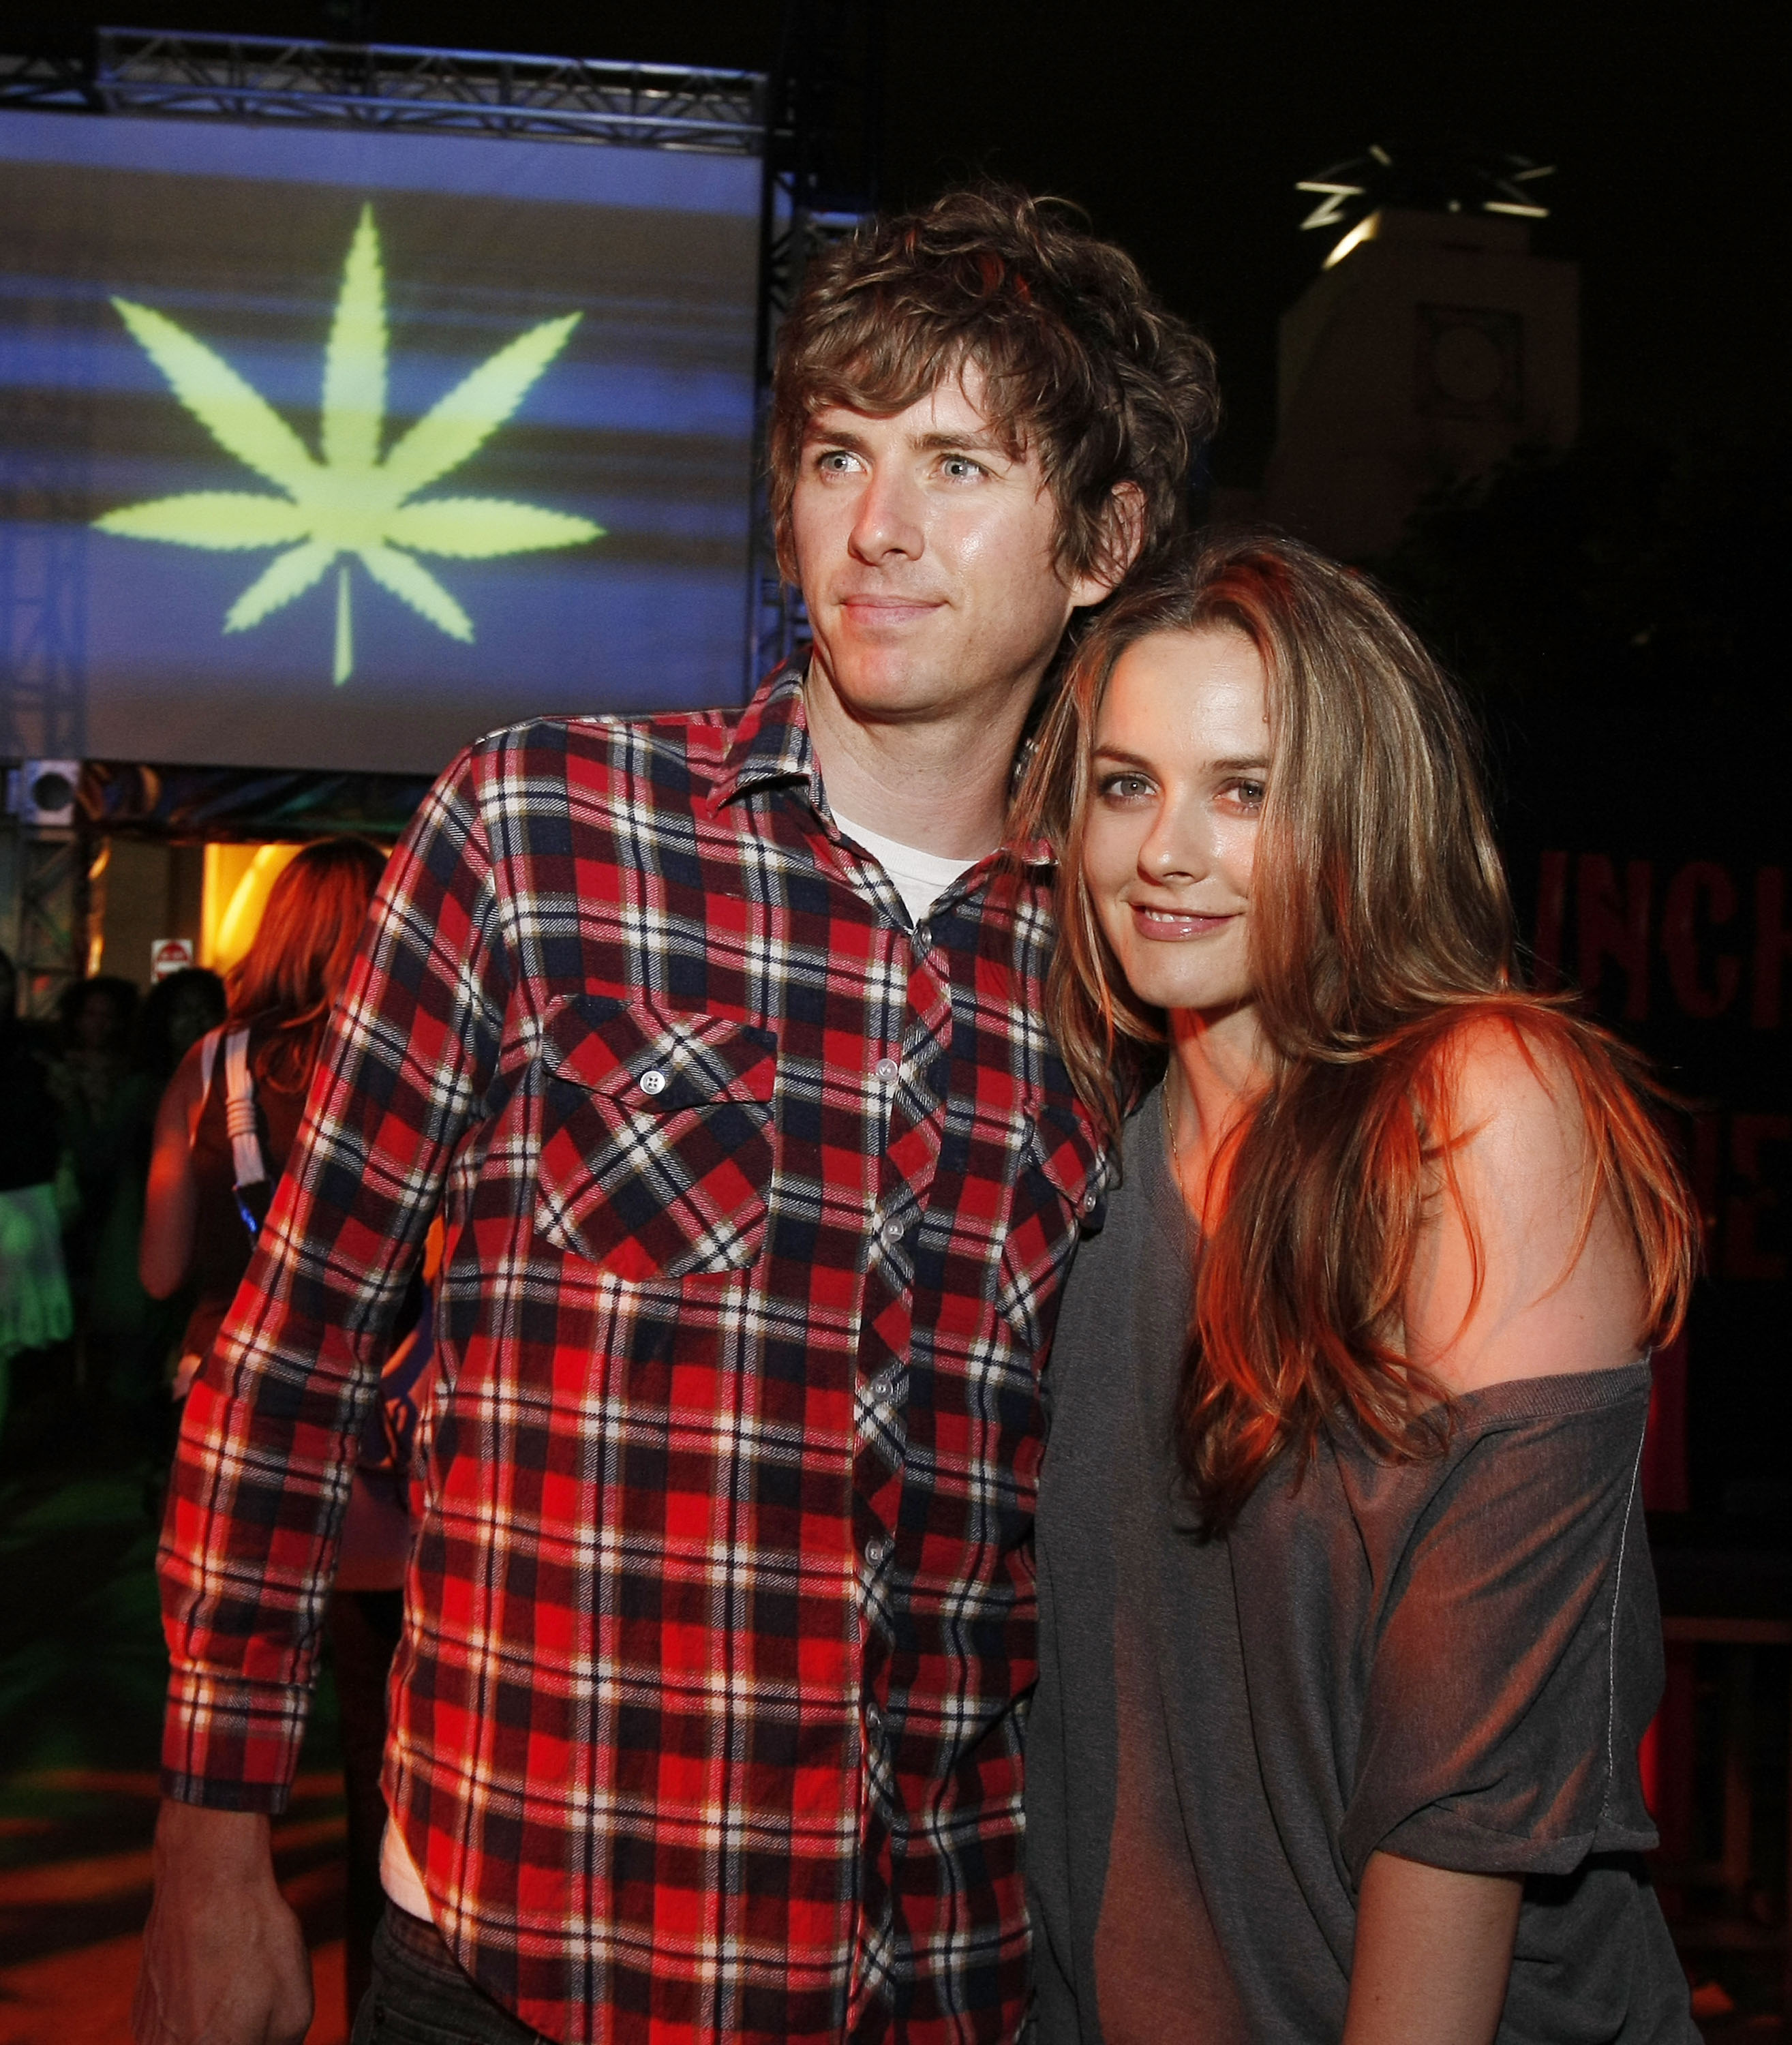 "LOS ANGELES, CA - JULY 31: Actress Alicia Silverstone (R) and husband Christopher Jarecki pose at the afterparty for the premiere of Columbia Picture's ""Pineapple Express"" at the Mann Village Theater on July 31, 2008 in Los Angeles, California. (Photo by Kevin Winter/Getty Images)"